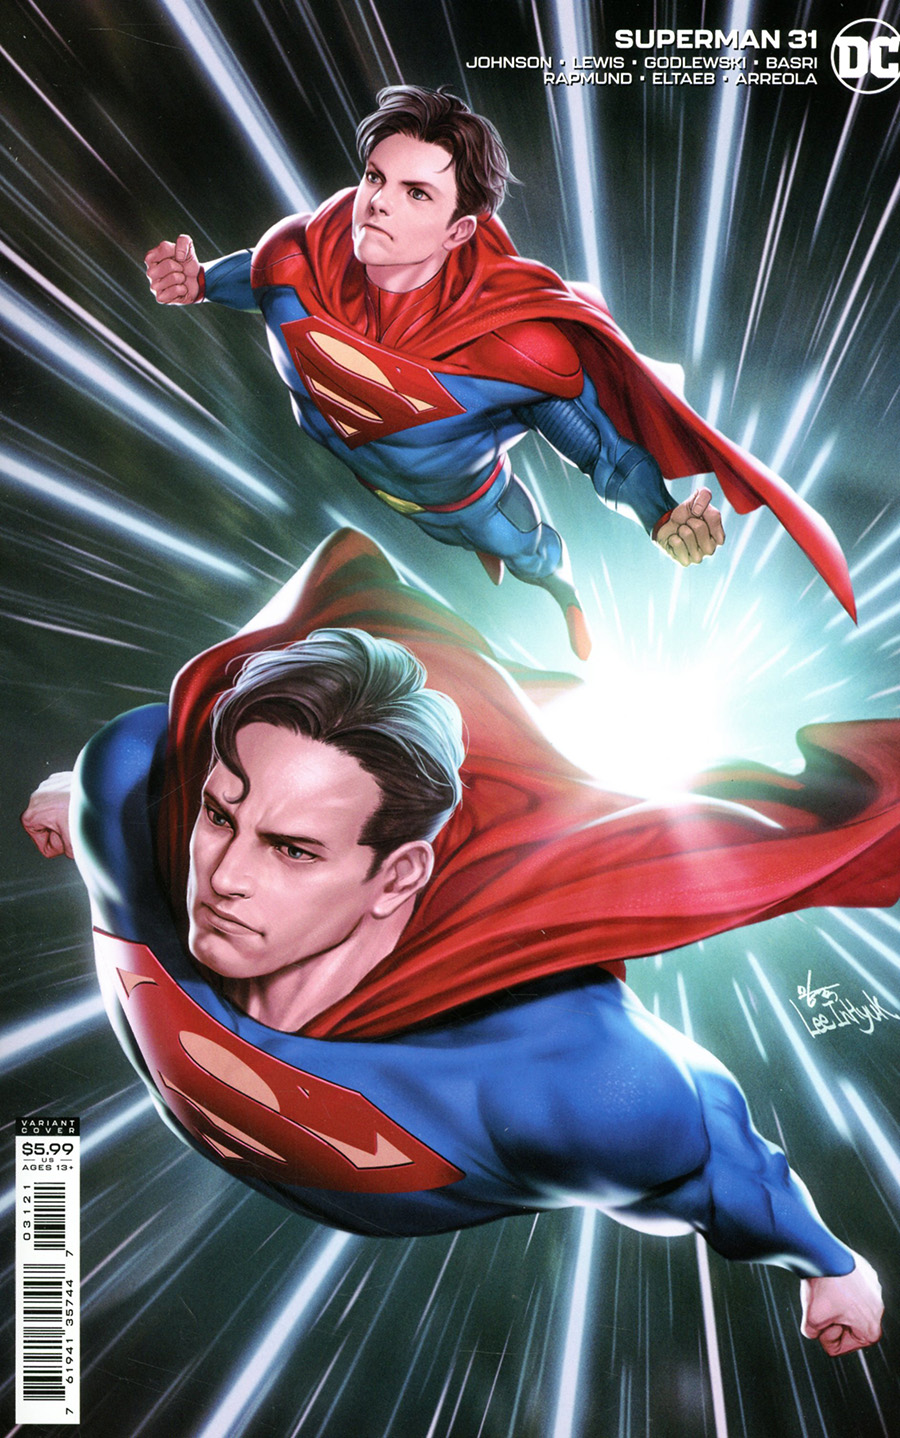 Superman Vol 6 #31 Cover B Variant Inhyuk Lee Card Stock Cover